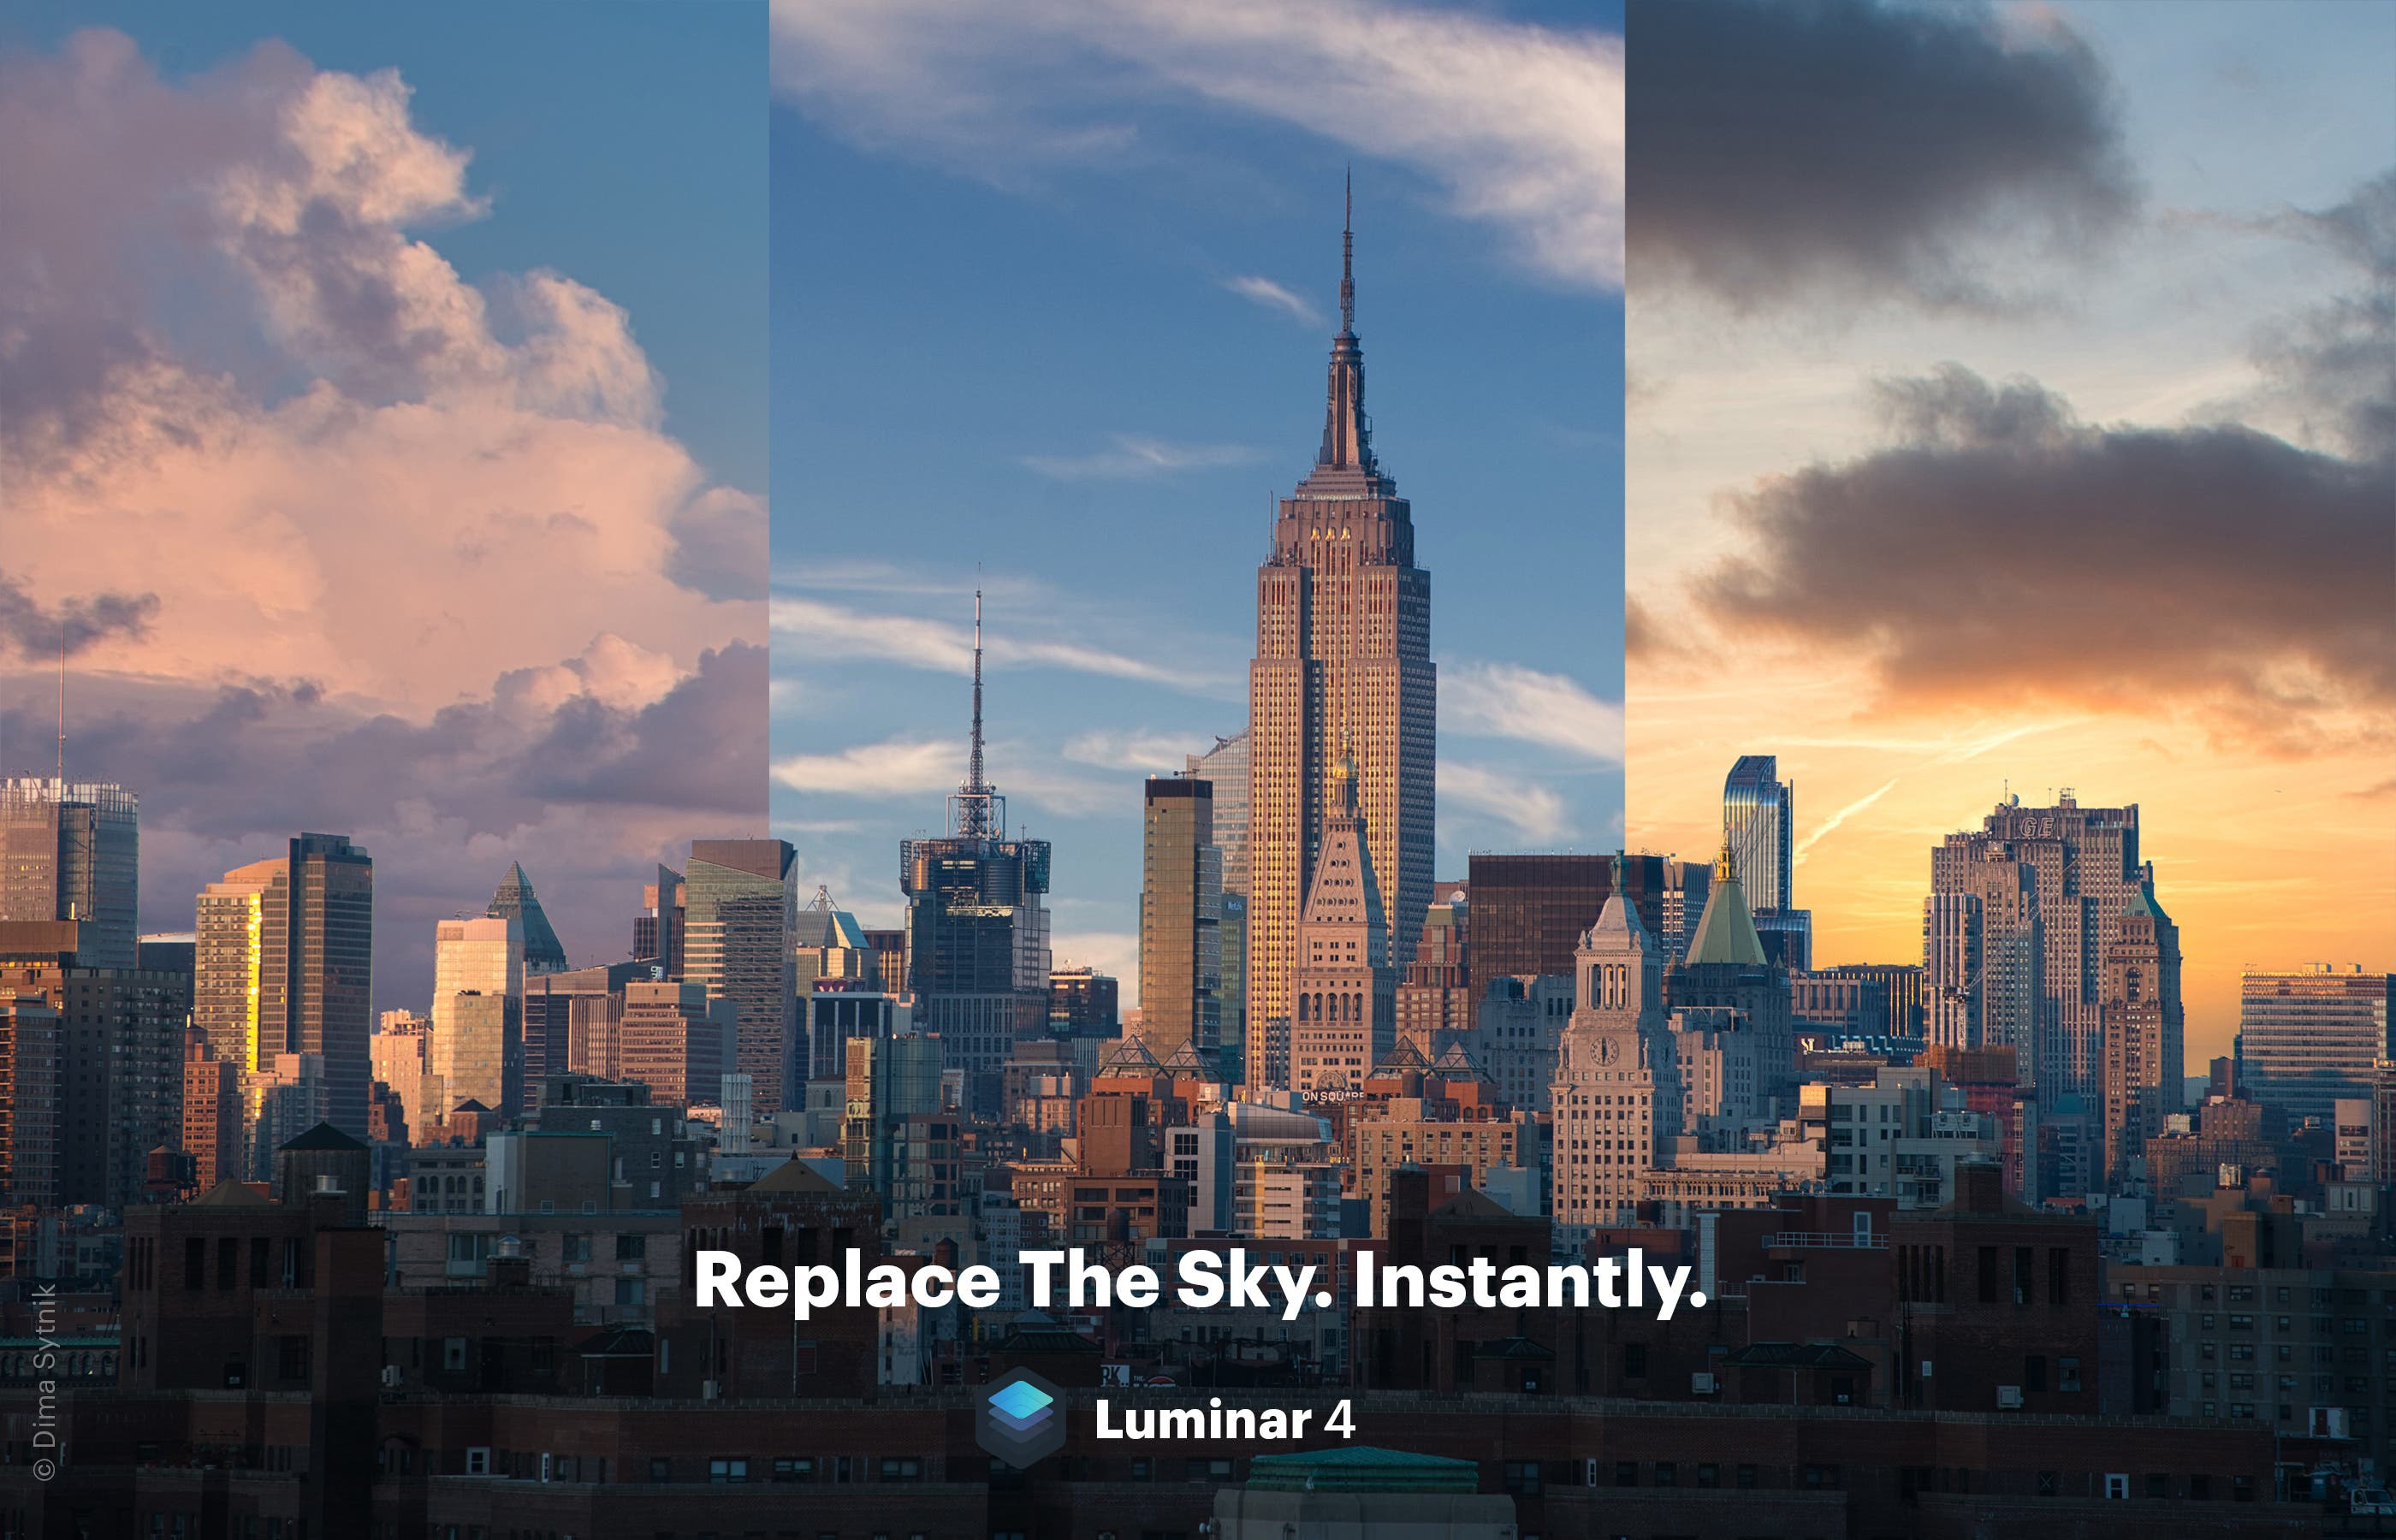 Luminar 4 to Feature the First Automatic Sky Replacement Technology